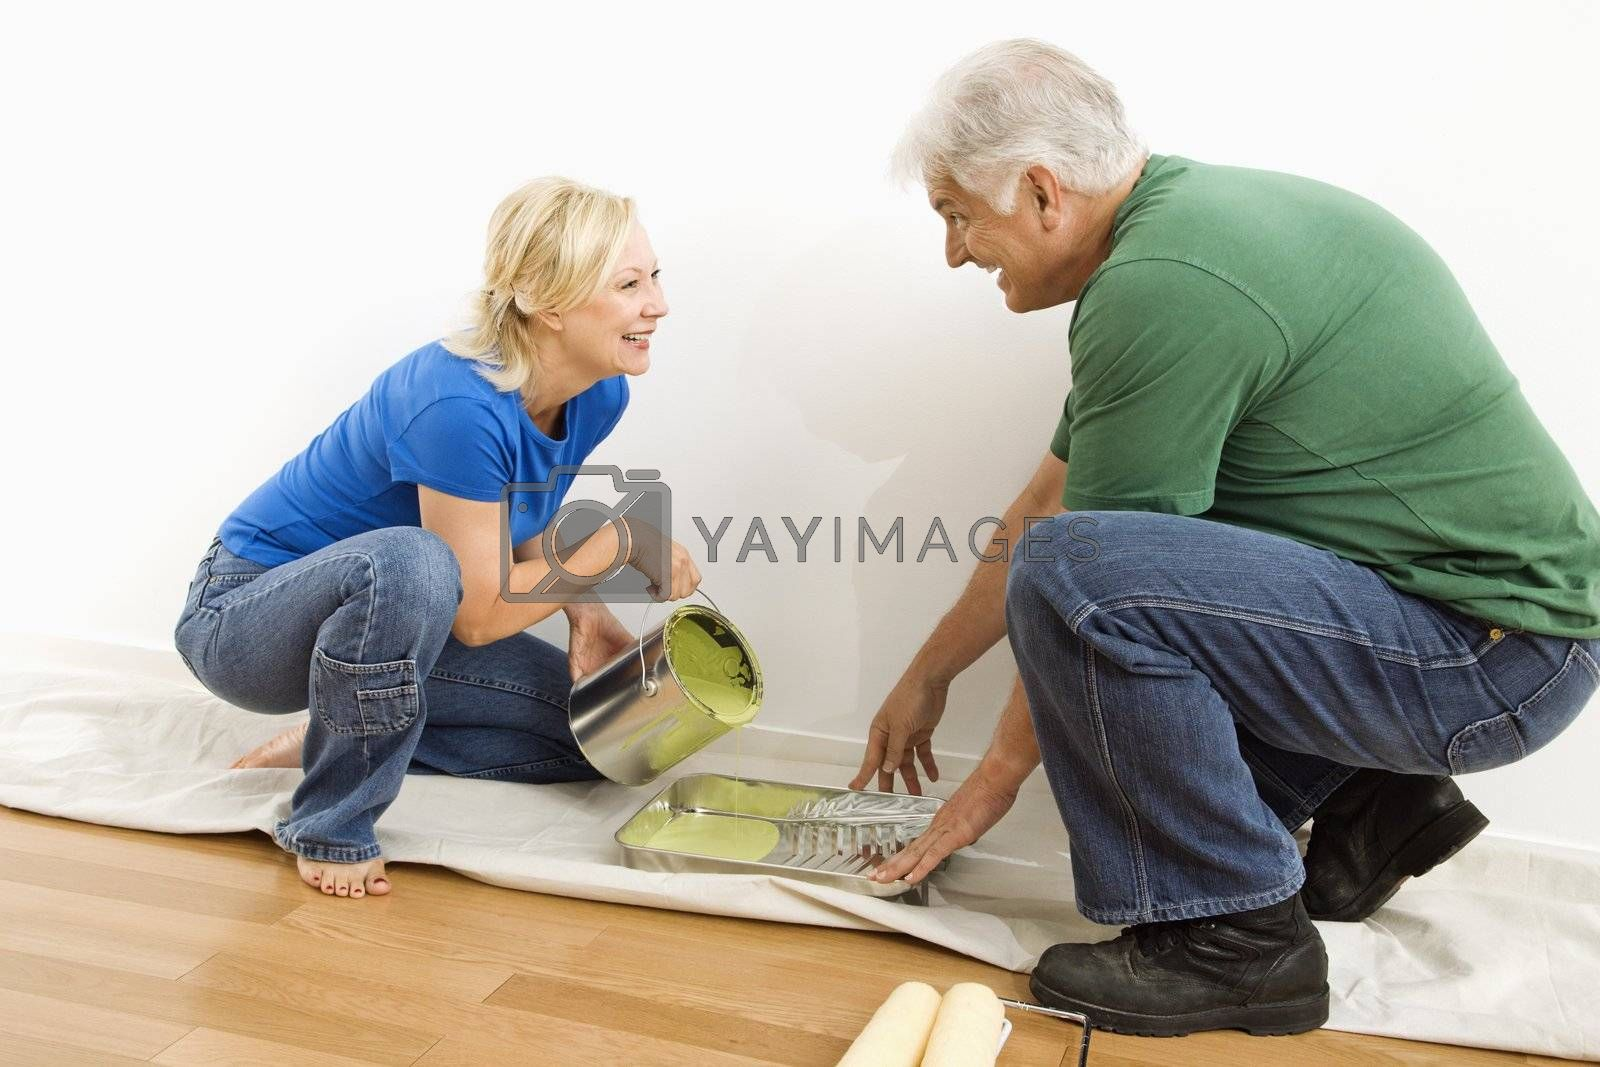 Middle-aged couple pouring paint into tray on drop cloth.